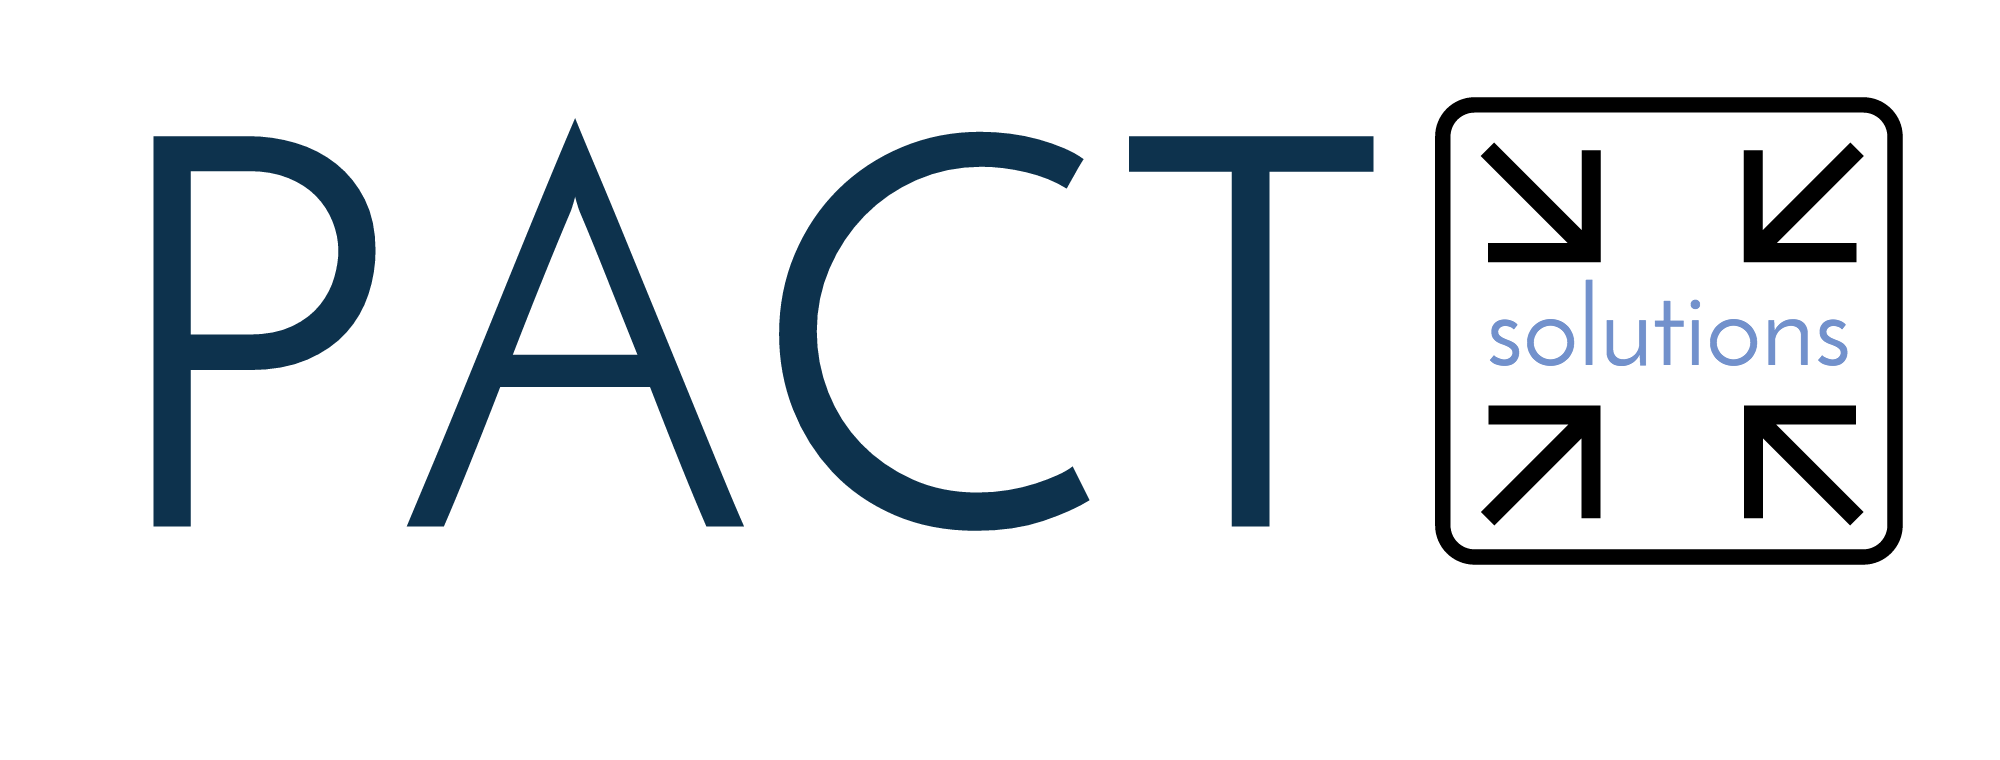 PACT.solutions powered by The Ruppert Co, LLC